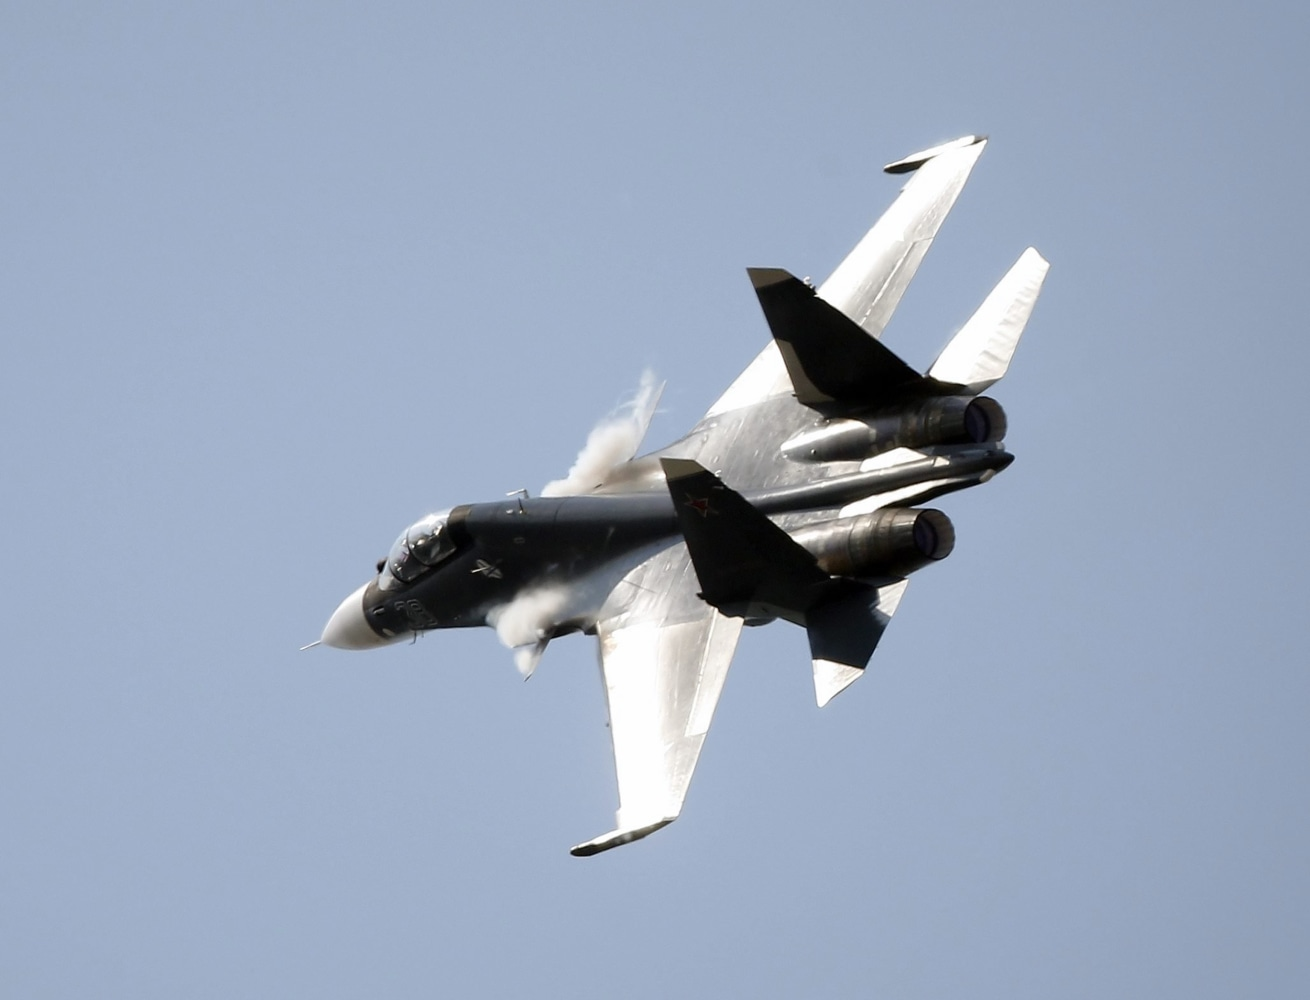 Chinese military planes intercept US aircraft